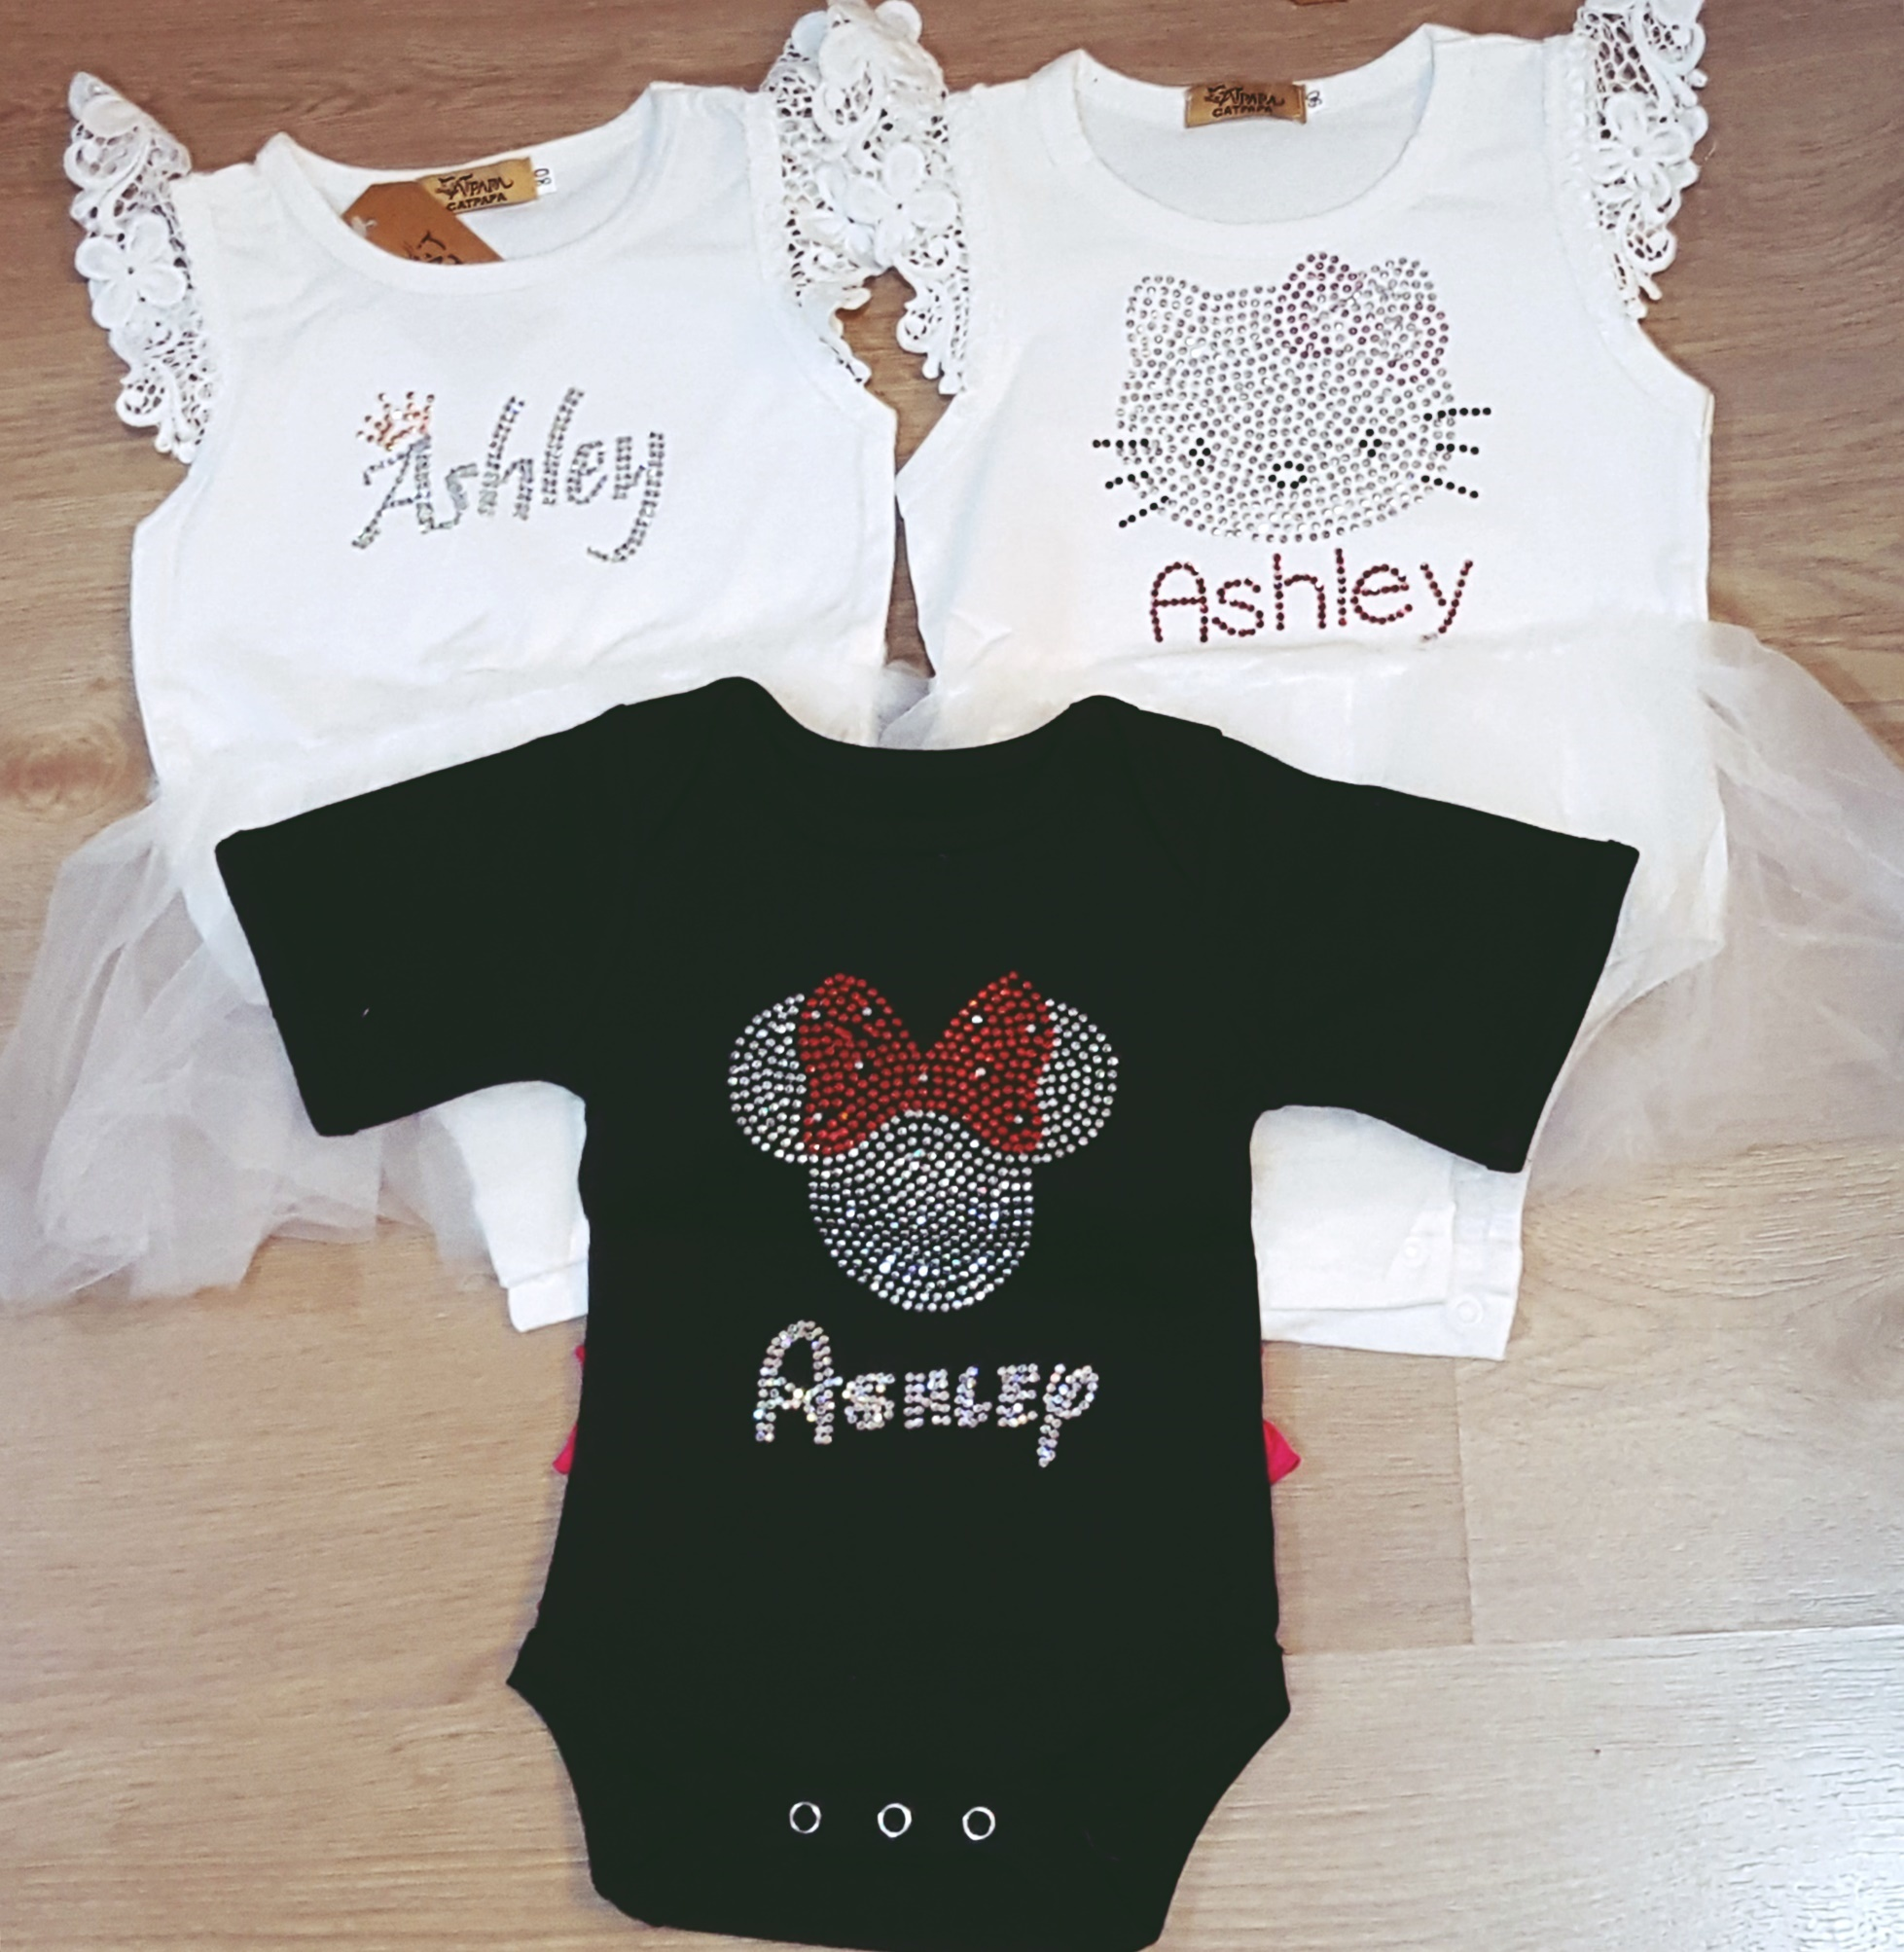 106d5c8a5 Customised Personalised Birthday Newborn Baby Clothes Rhinestone Romper  Full Month Baby Shower